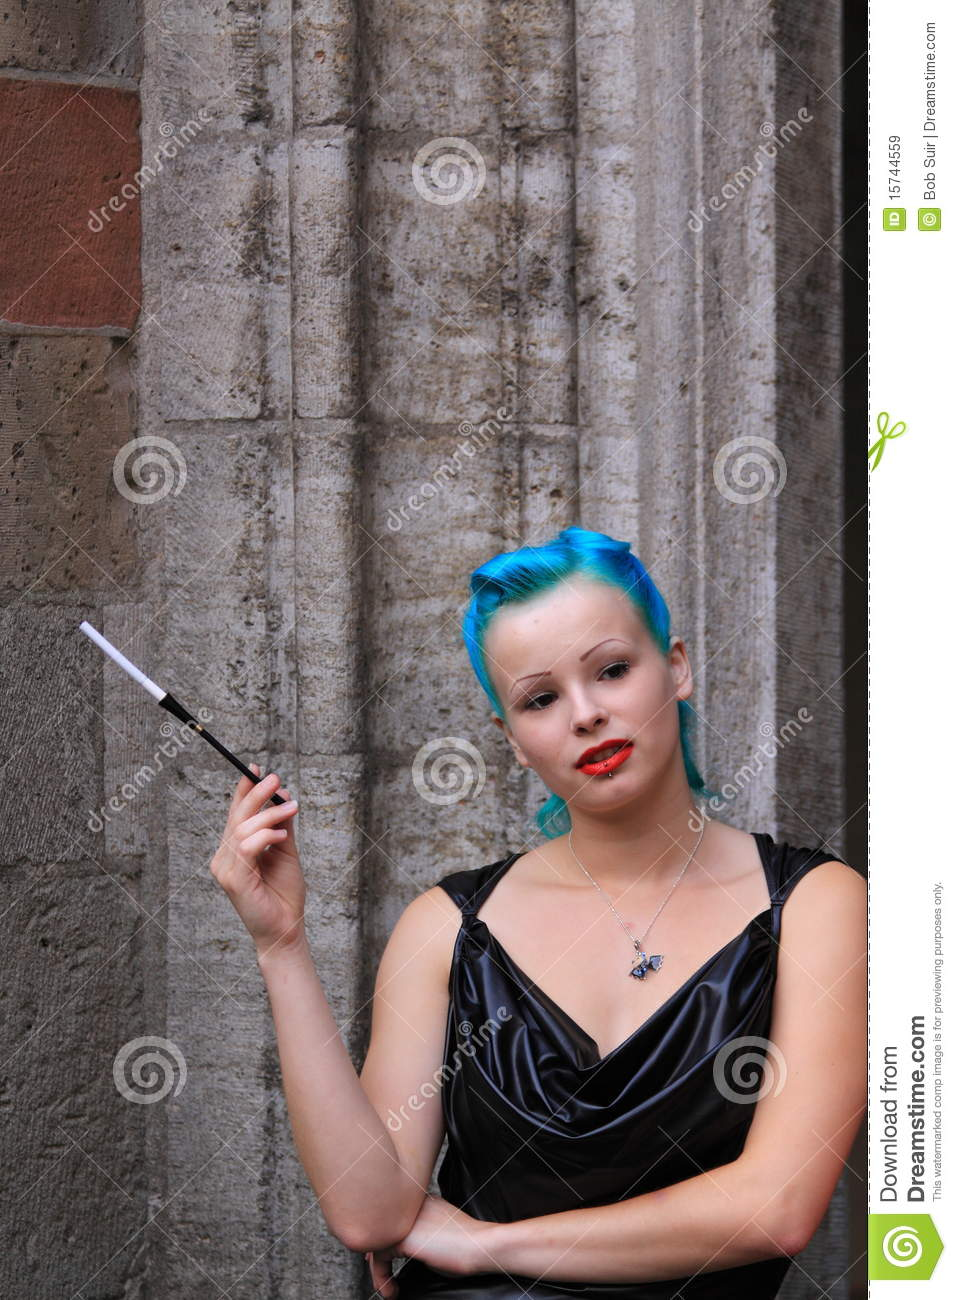 Woman With Blue Hair Cigarette Leather Dress Royalty Free